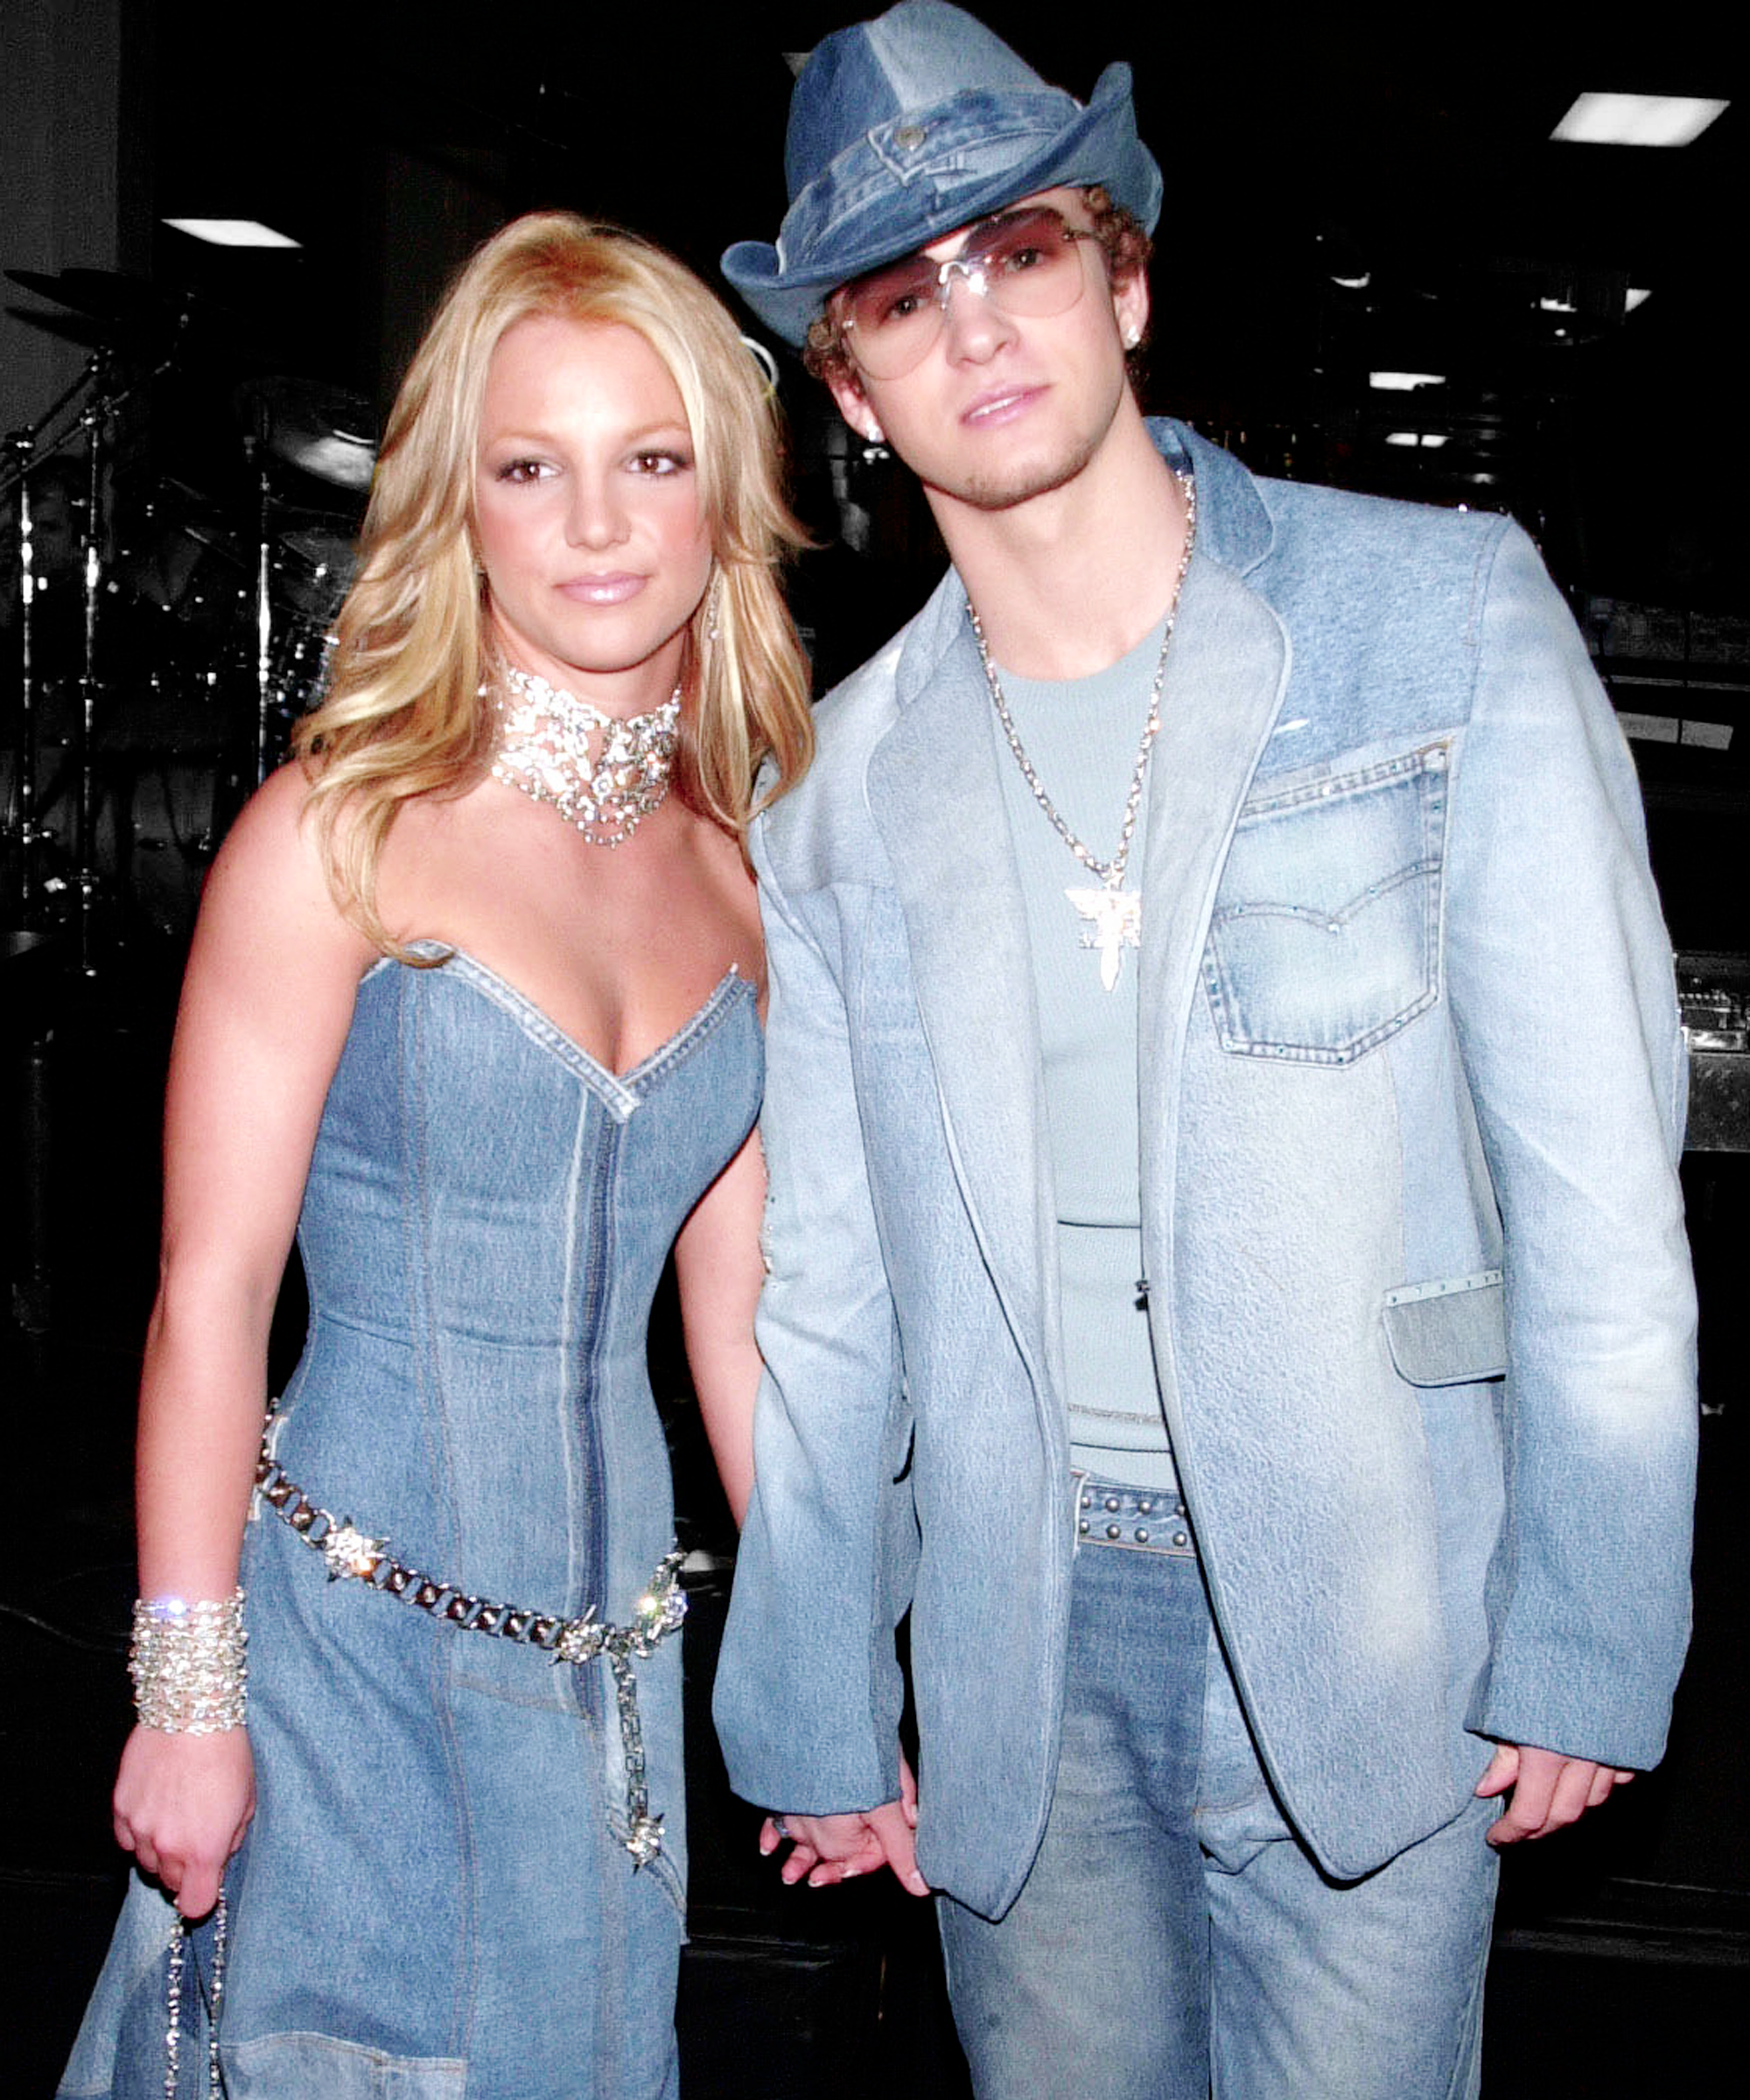 Justin Timberlake Britney Spears Denim On Denim Outfits